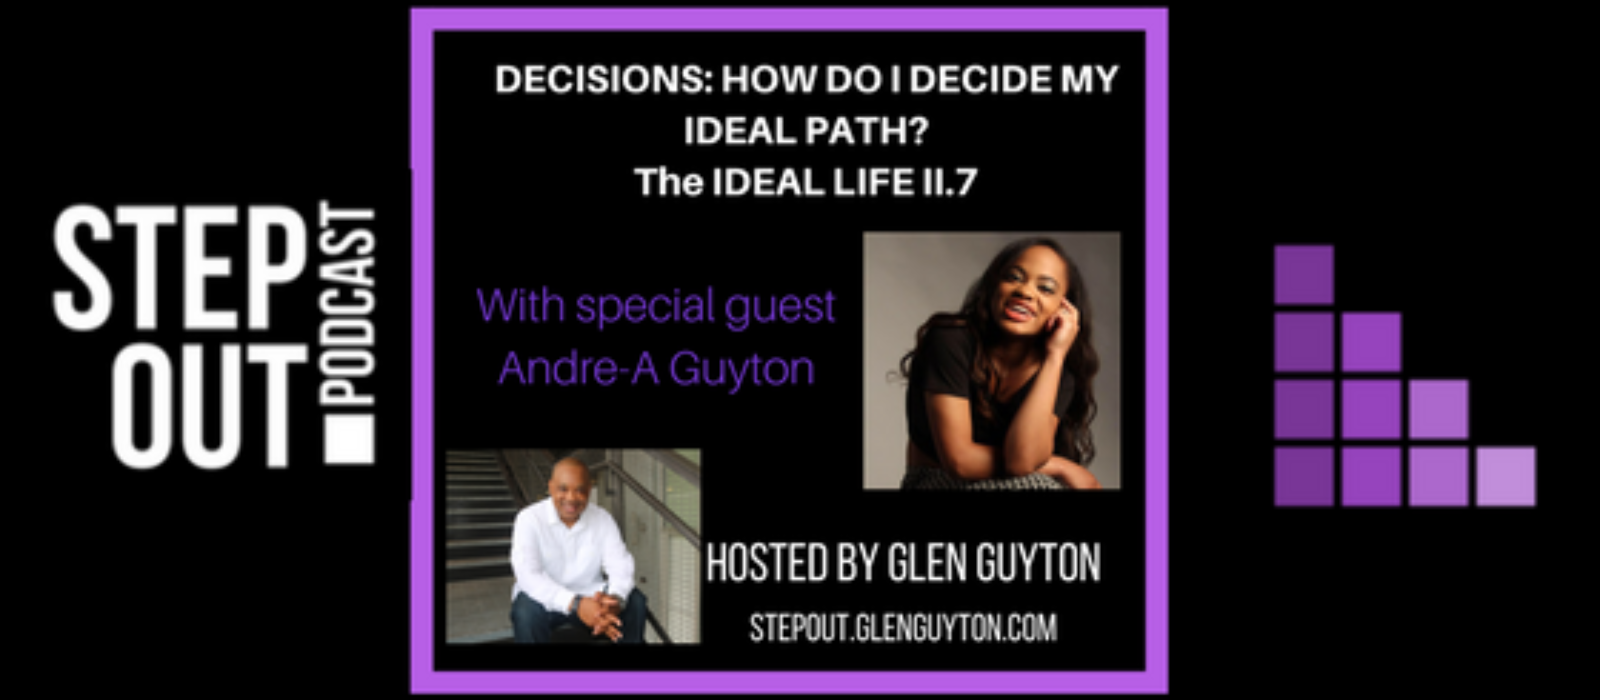 Decisions: How do I determine my ideal path in life?